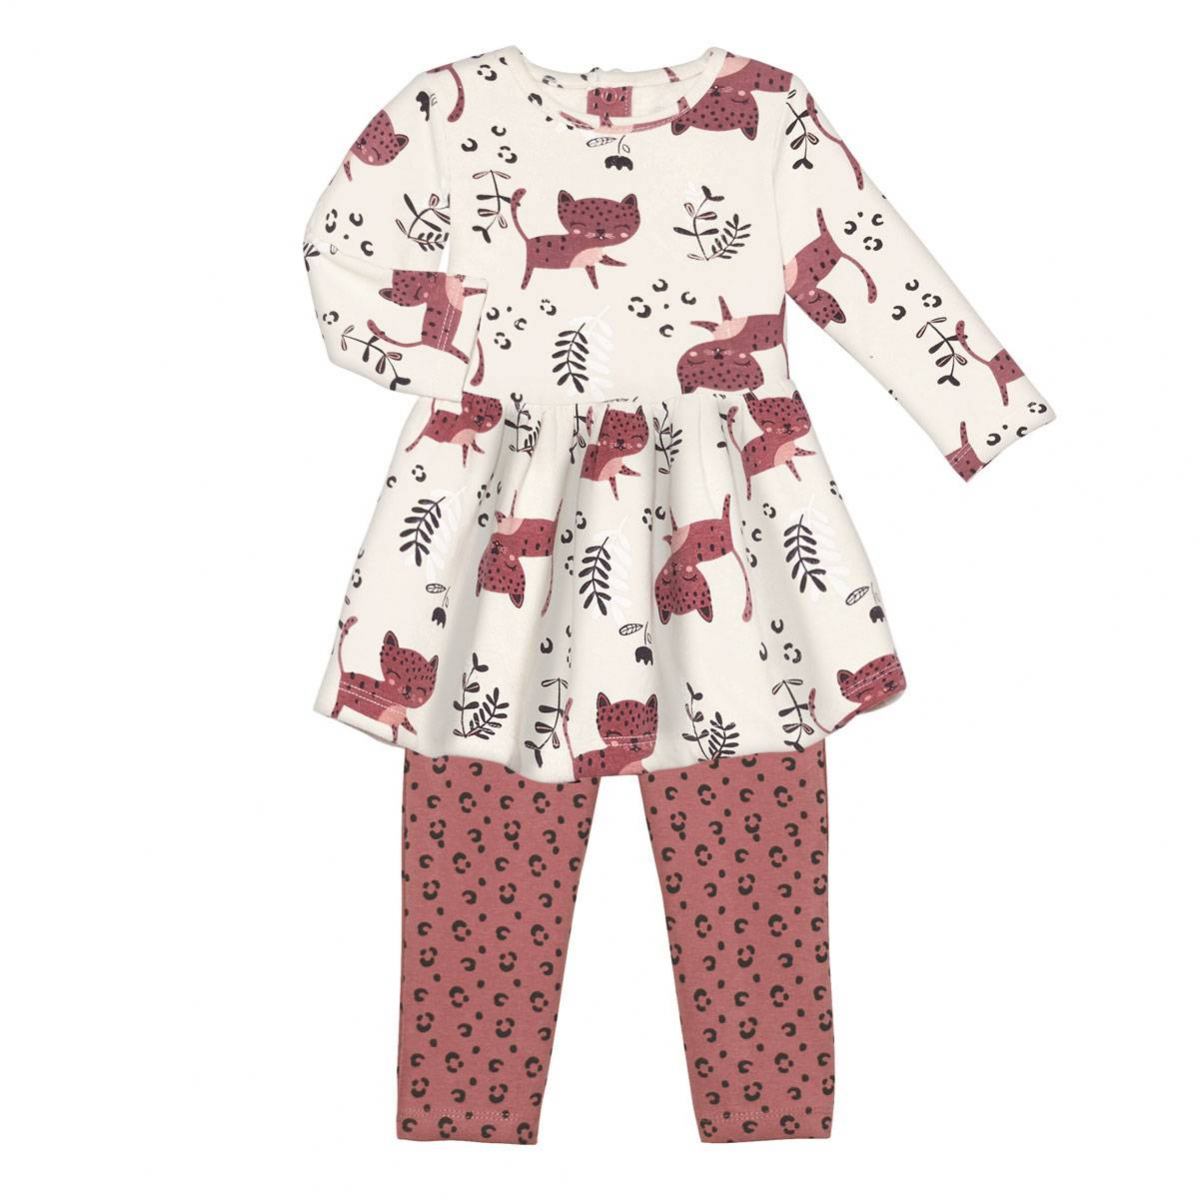 Robe en molleton + Legging bébé fille Léa Ensemble